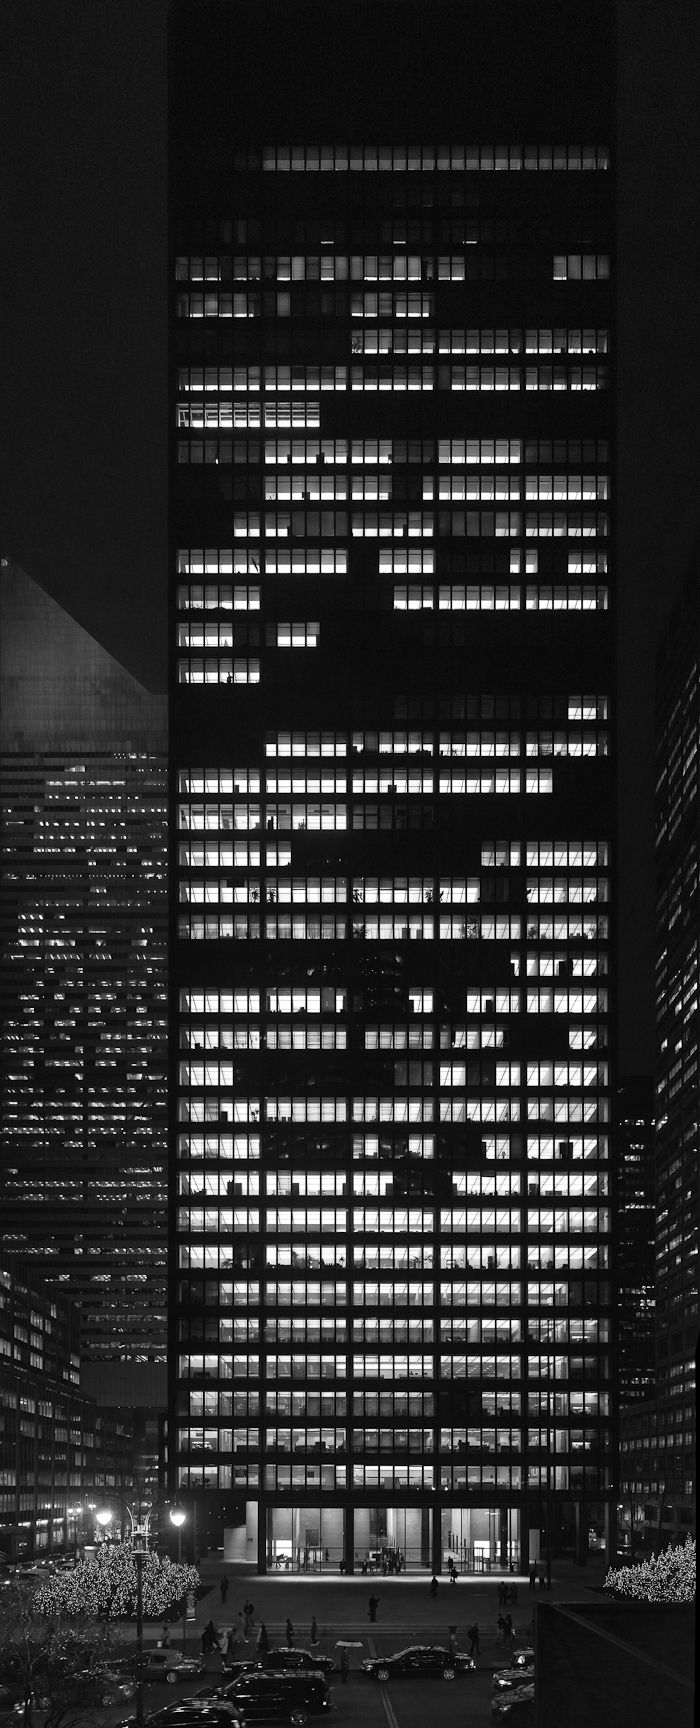 The Seagram building by Mies van der Rohe and Philip Johnson (1954-1958)